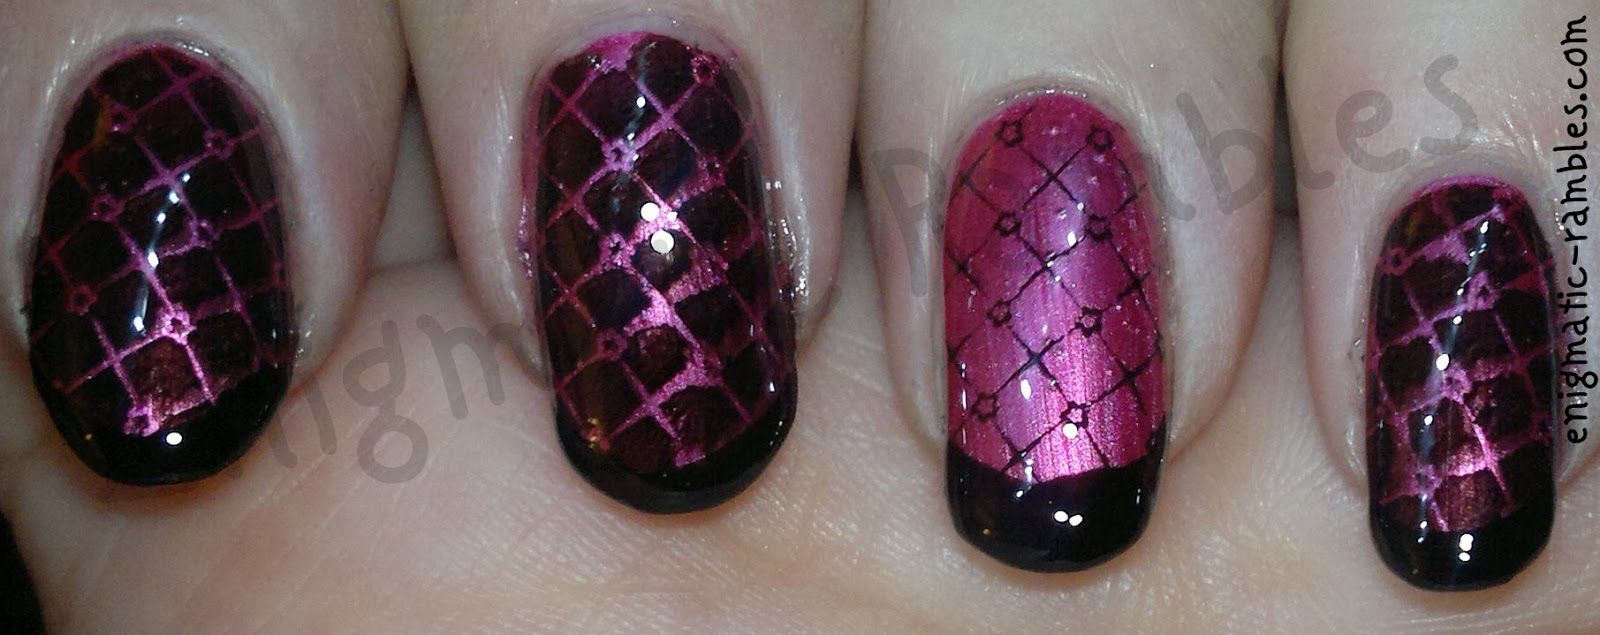 Ring Finger Stamping - Enigmatic Rambles